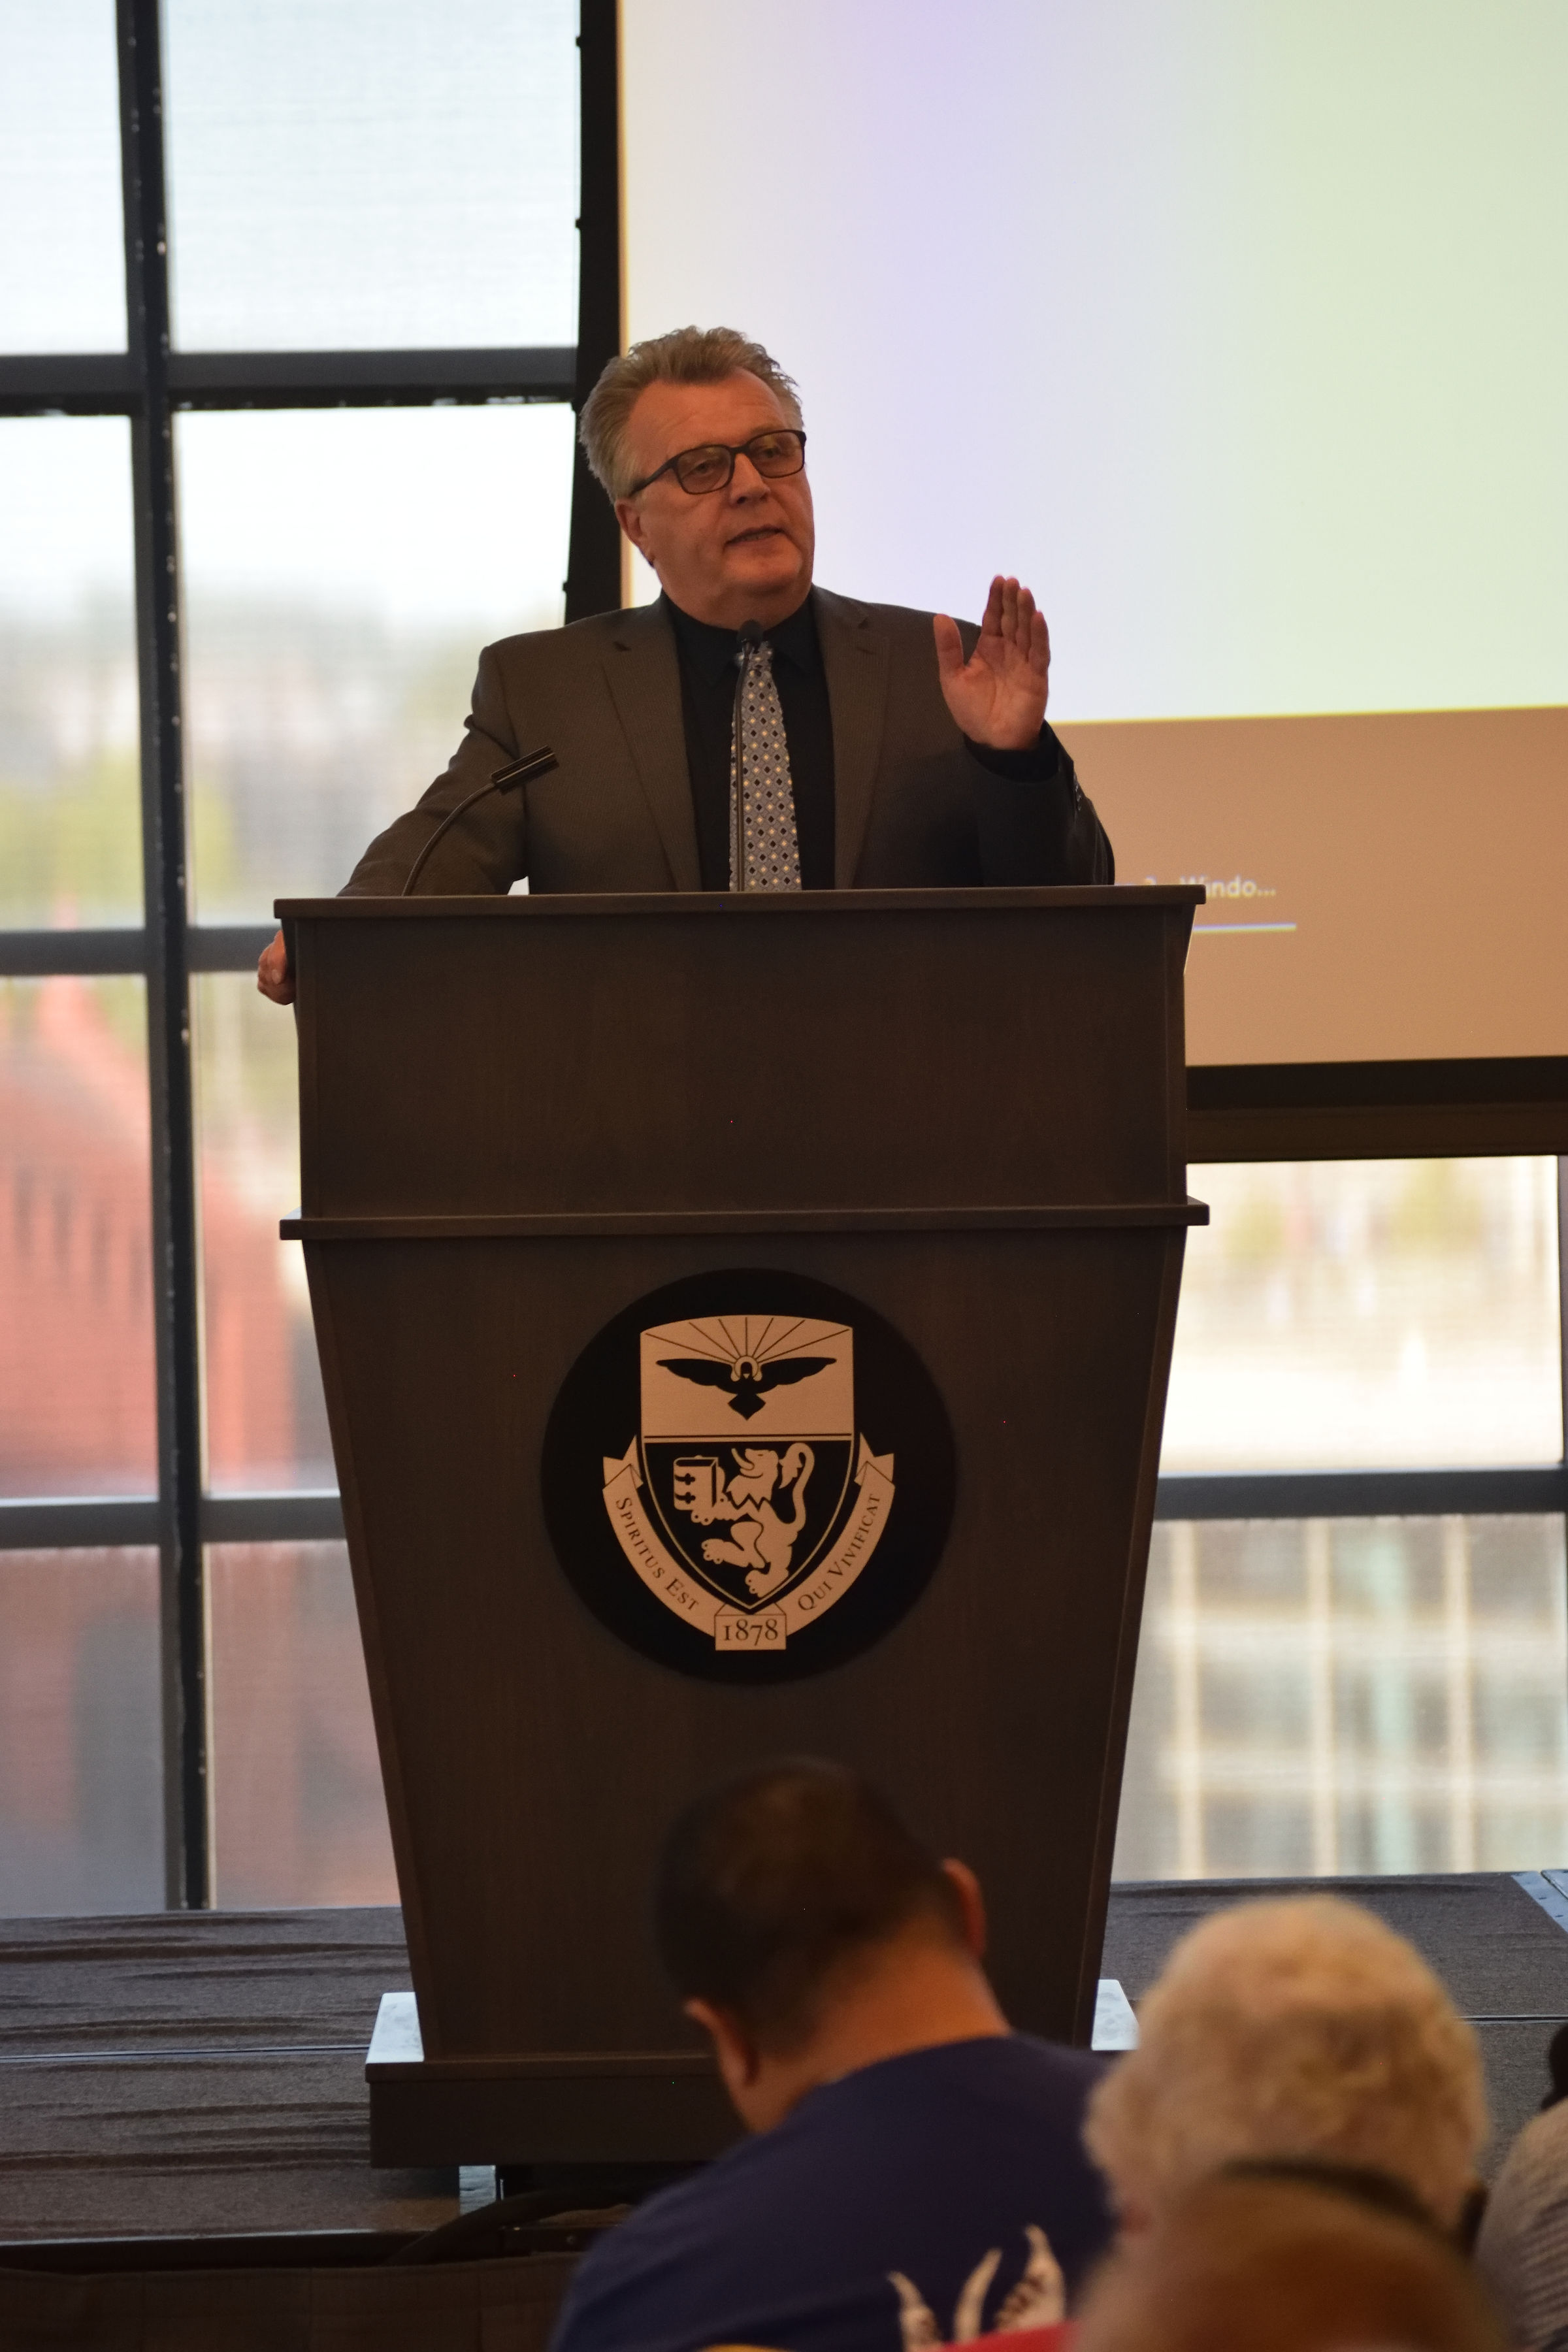 Dr. Veli-Matti Kärkkäinen speaking at the 2019 Holy Spirit Lecture